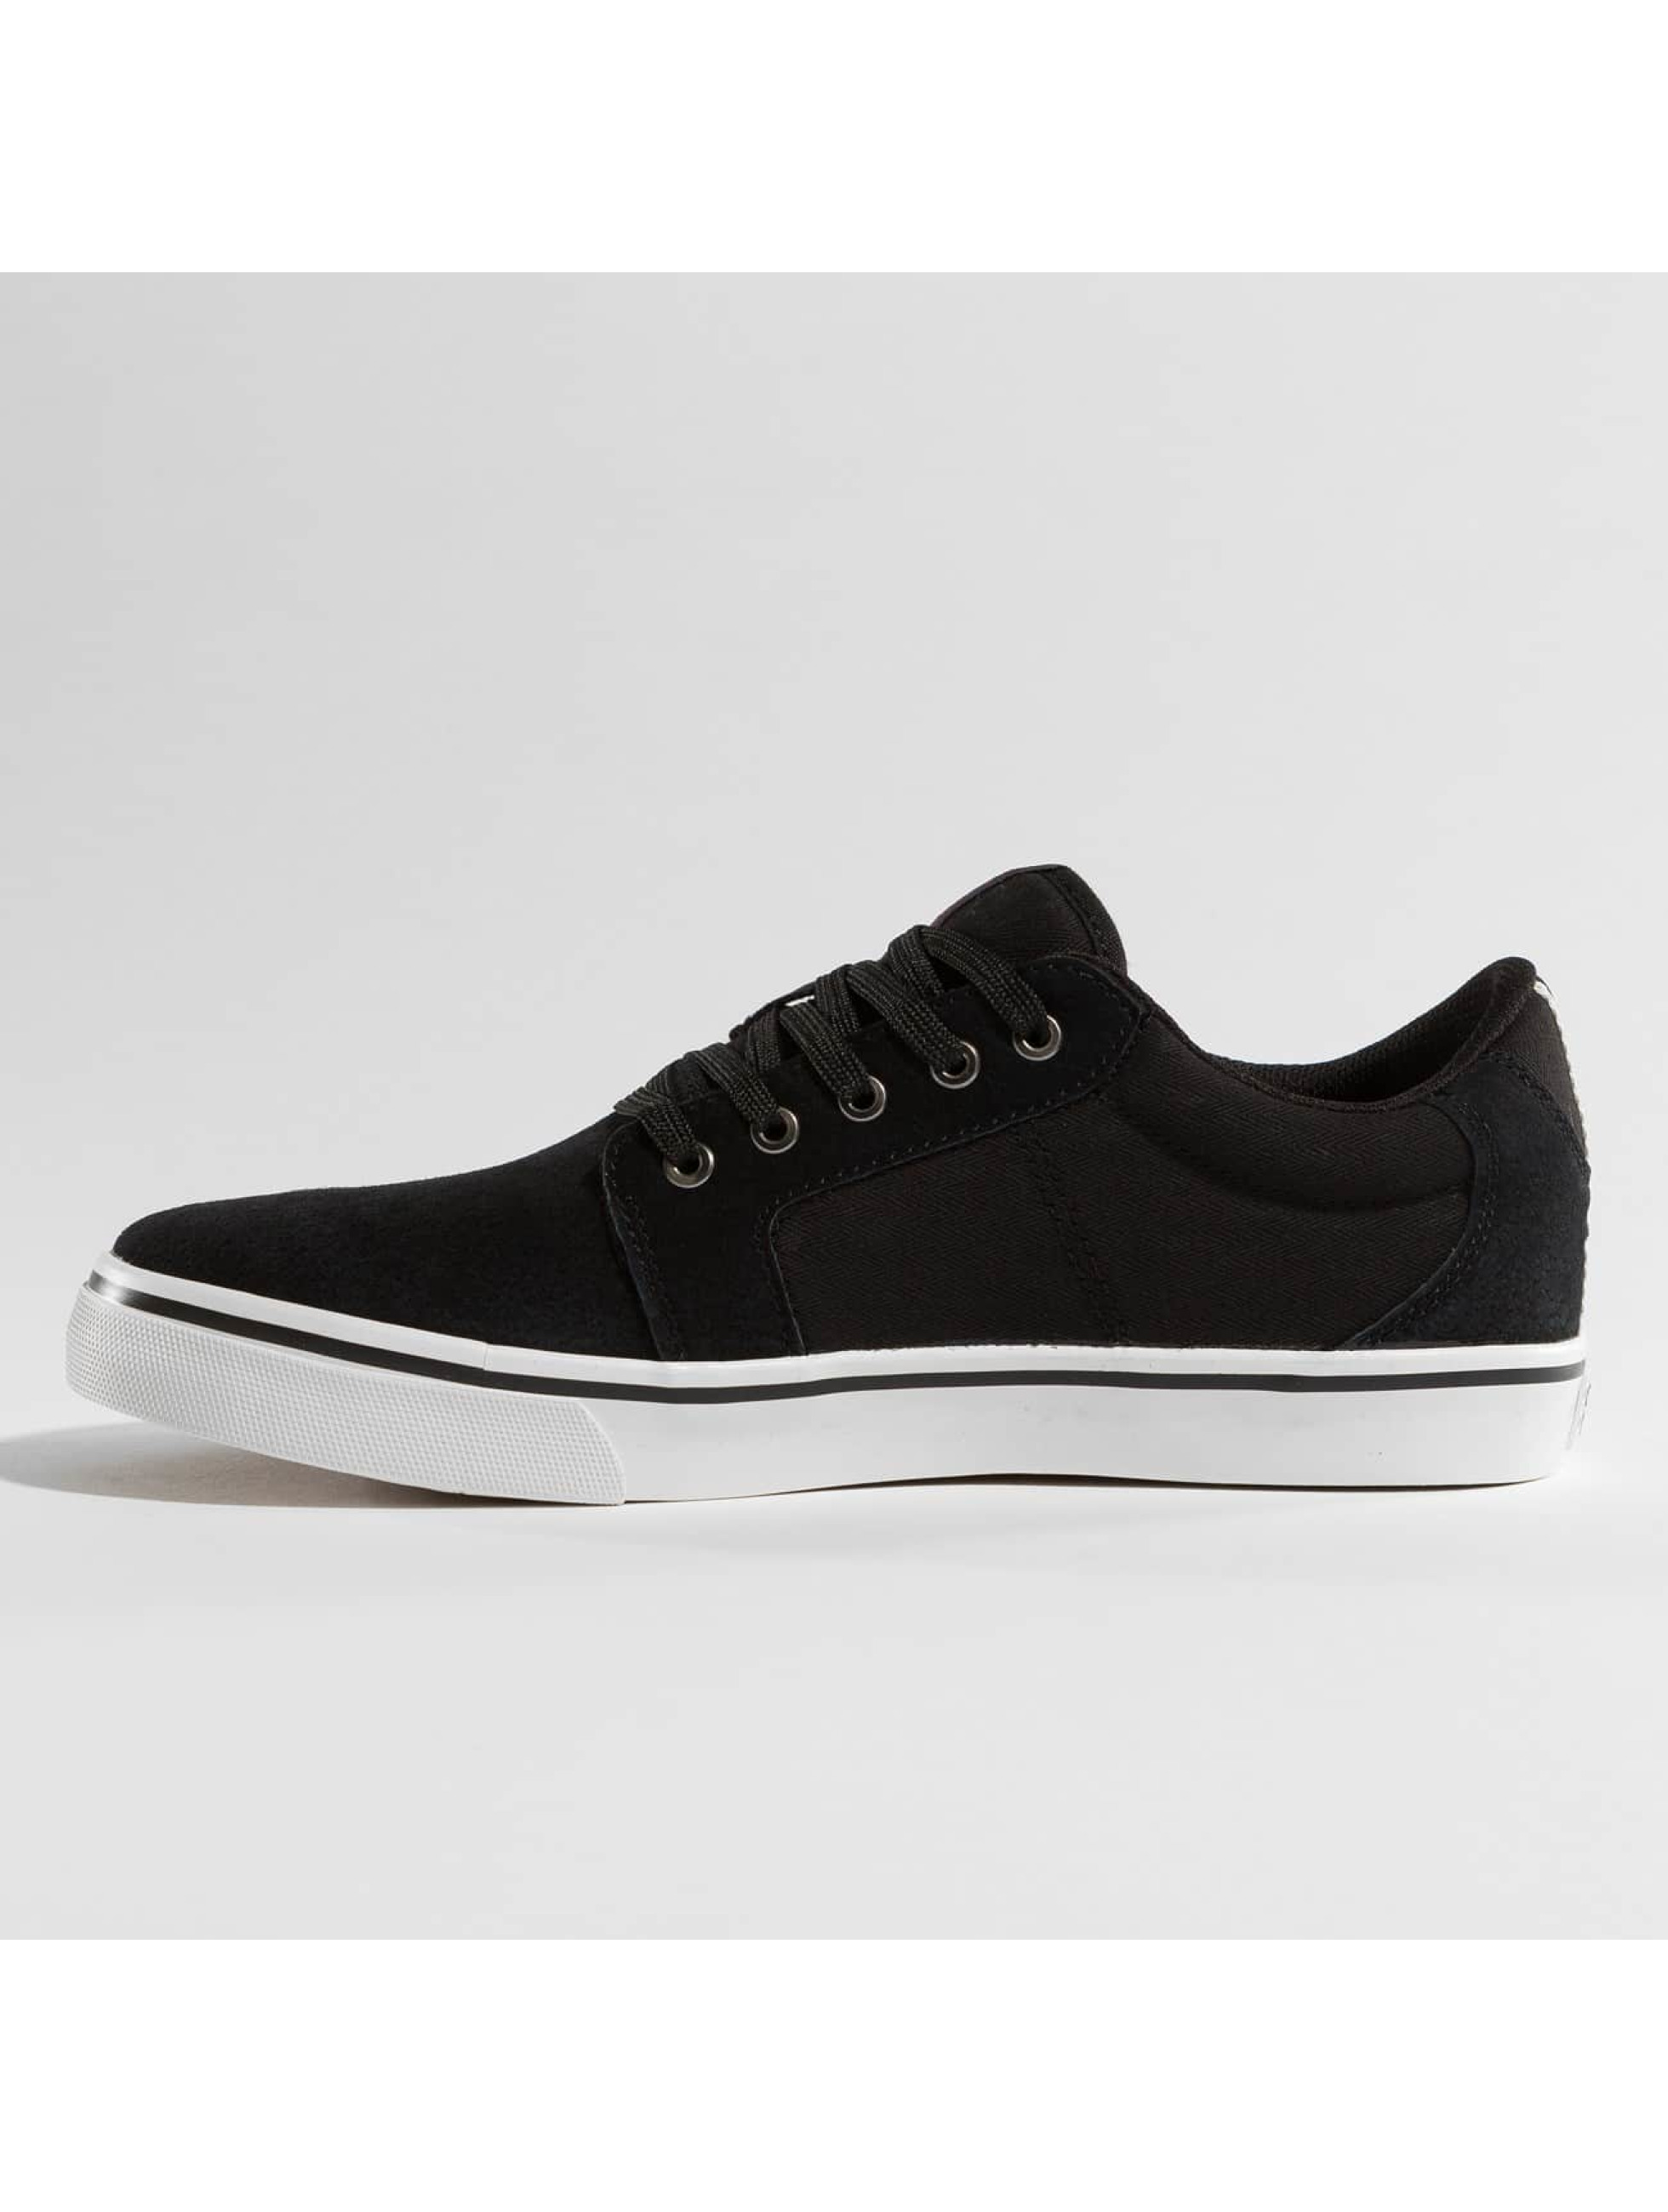 Jack & Jones Baskets jfwDandy Nubuck noir